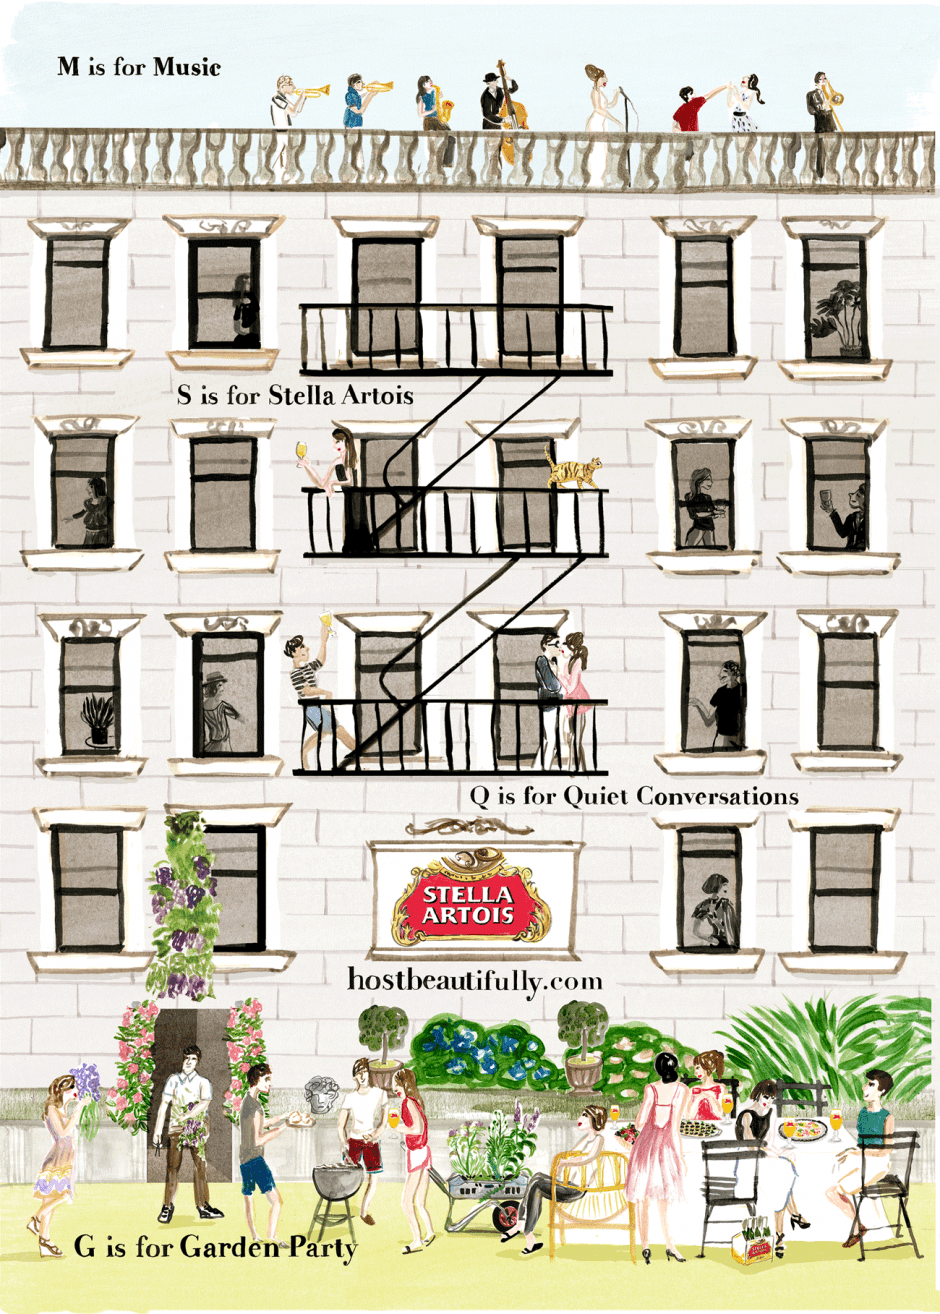 Cassandre Monteriol aus Paris steuerte zauberhafte Illustrationen für die Kampagne »Host Beautifully« von Mother New York für Stella Artois